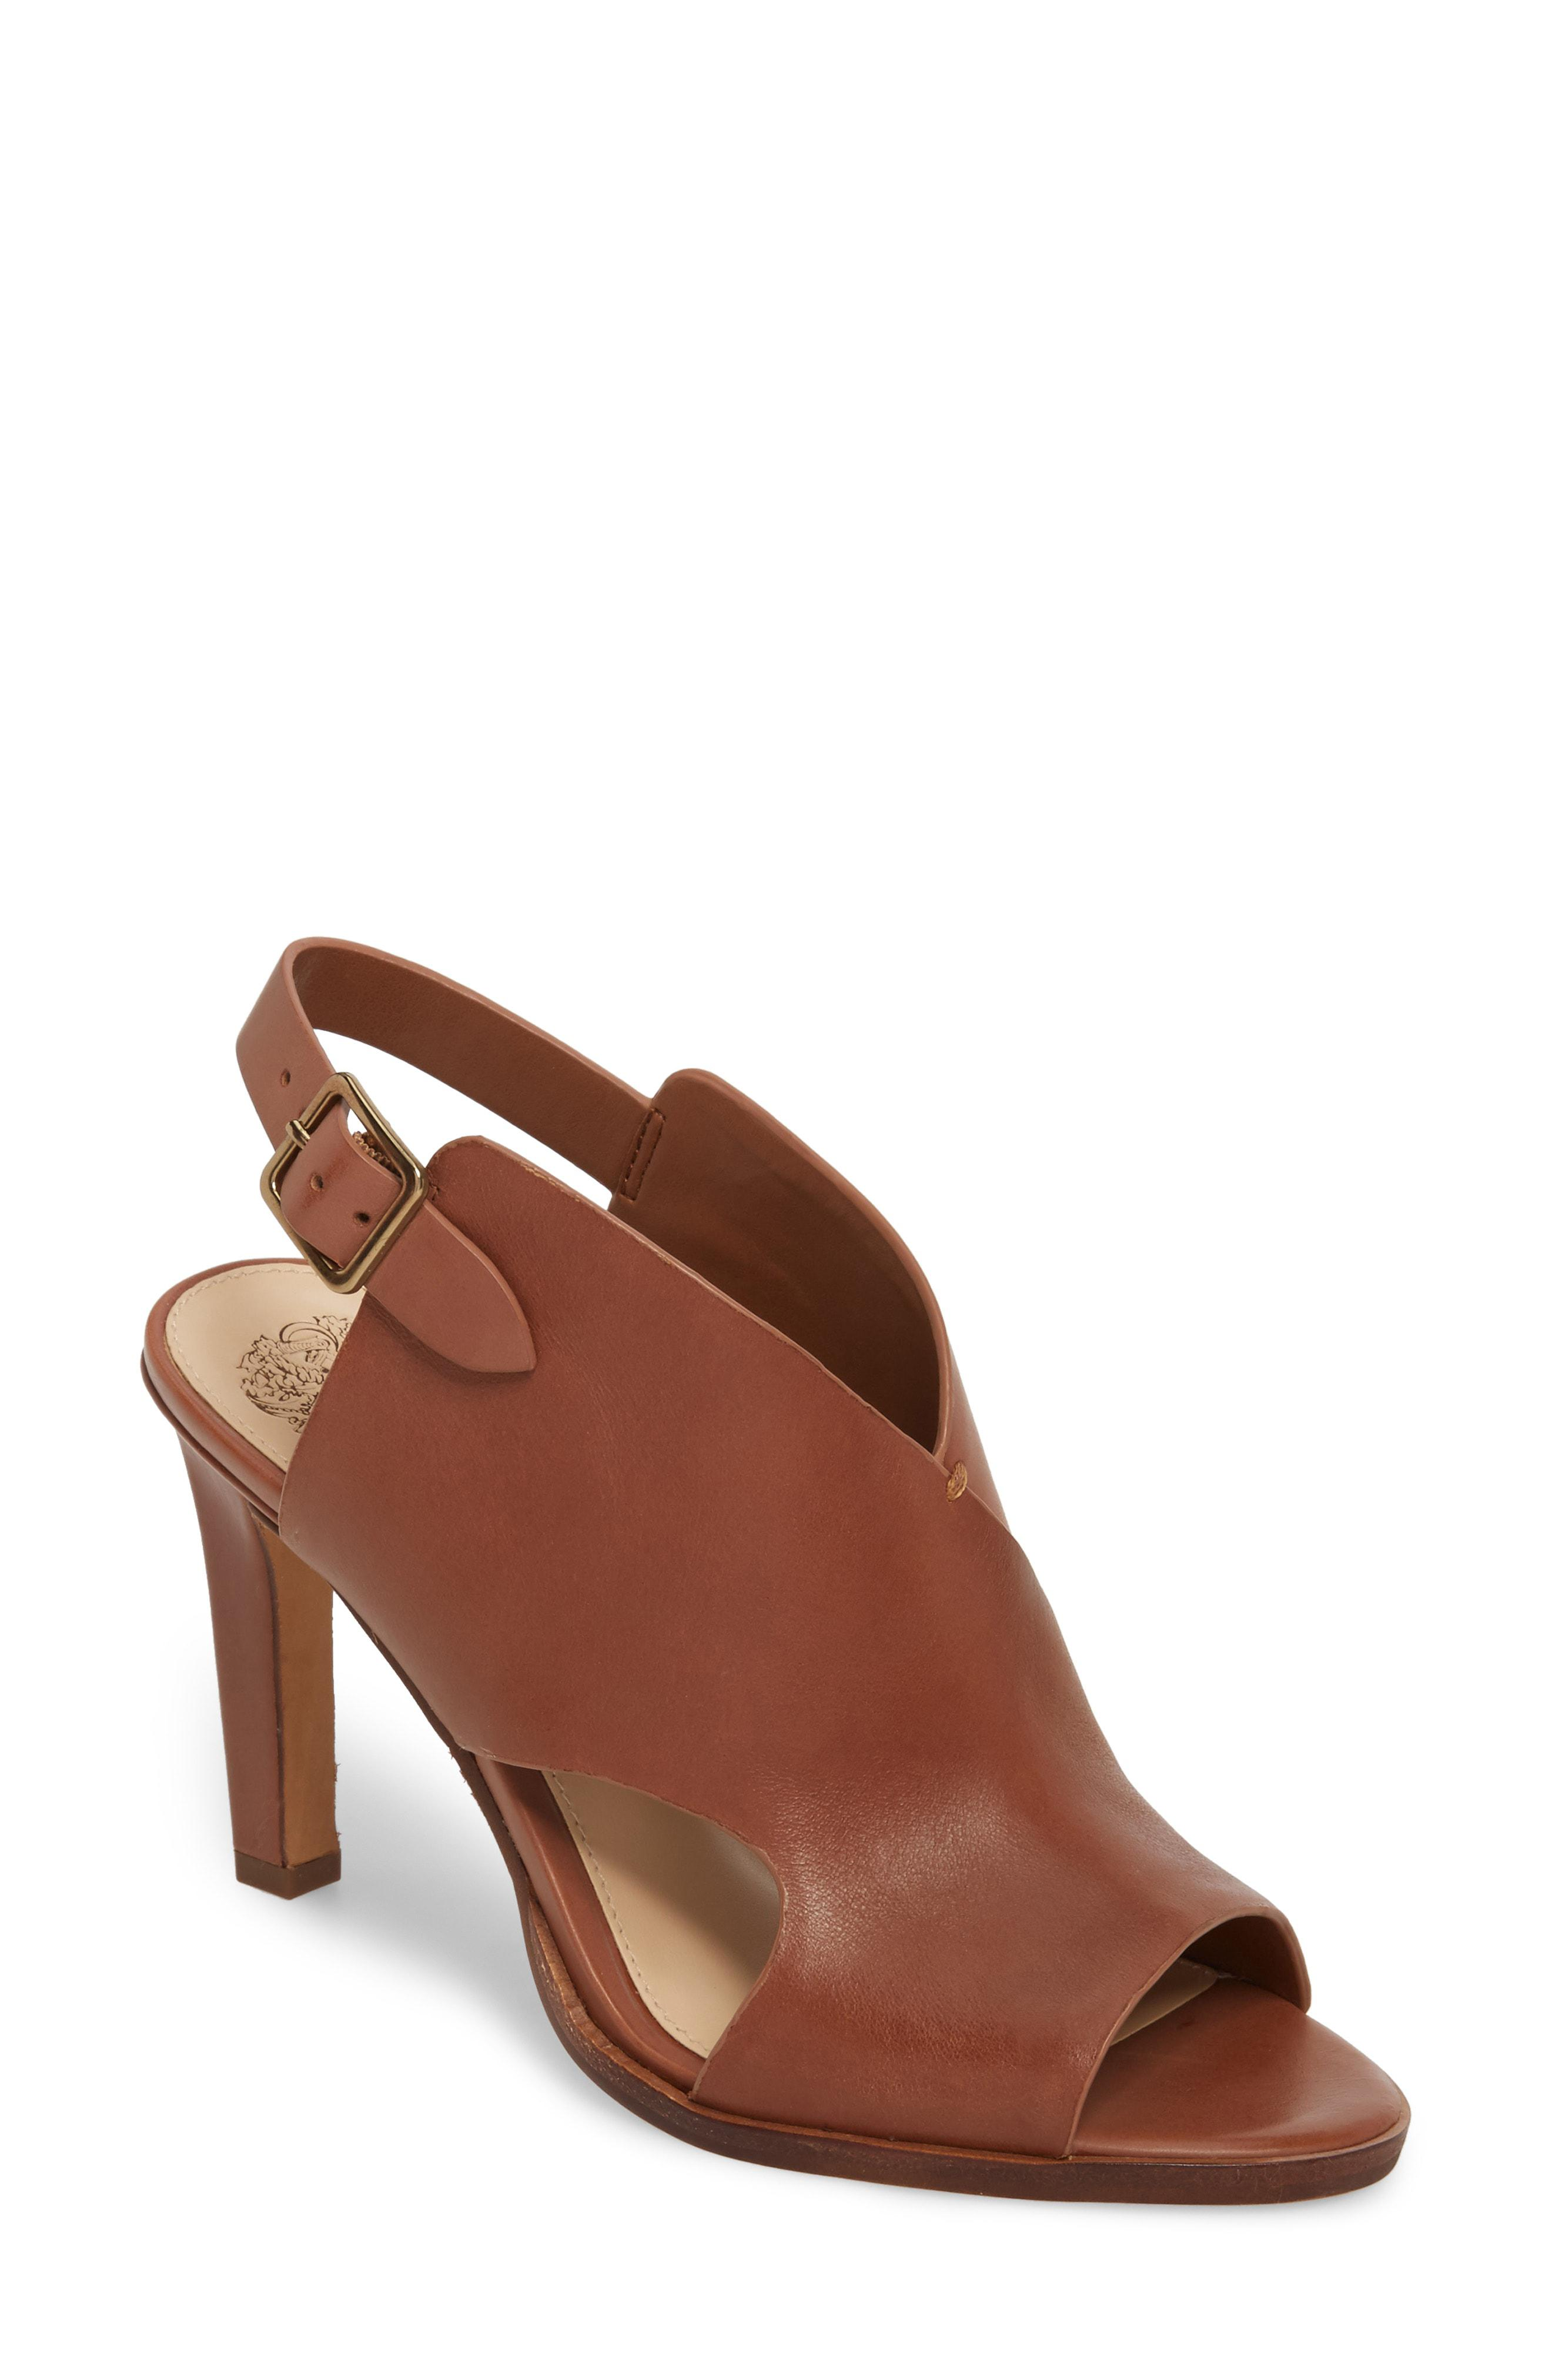 3a0a8be05de Lyst - Vince Camuto Norral Sandal in Brown